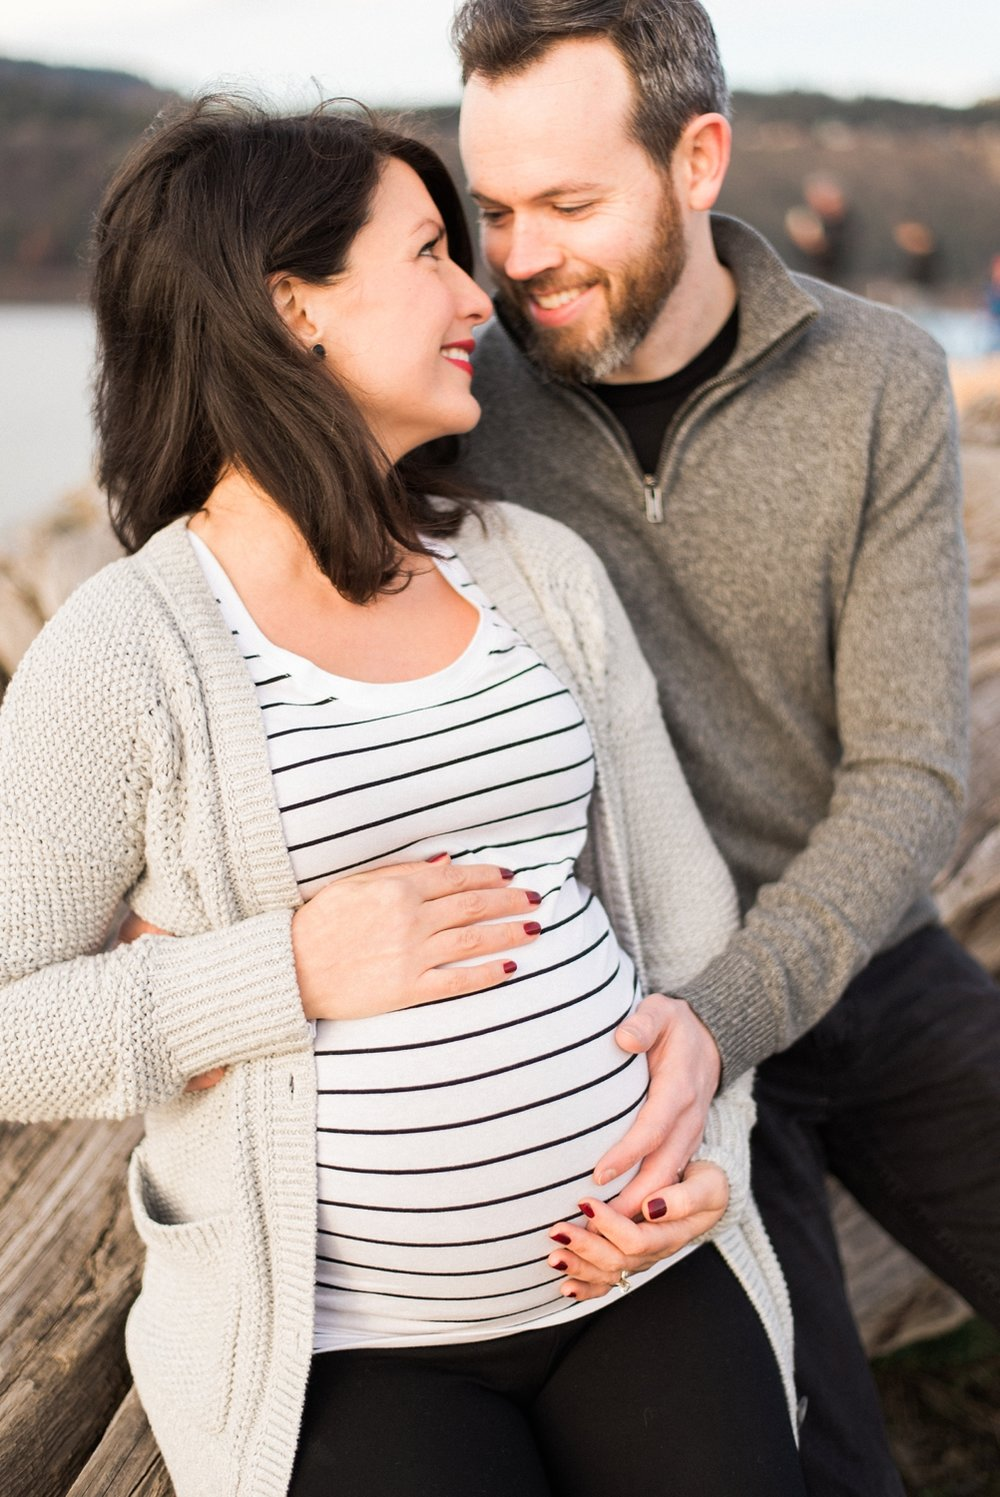 hood-river-maternity-photos-columbia-river-gorge-shelley-marie-photo-118_cr.jpg